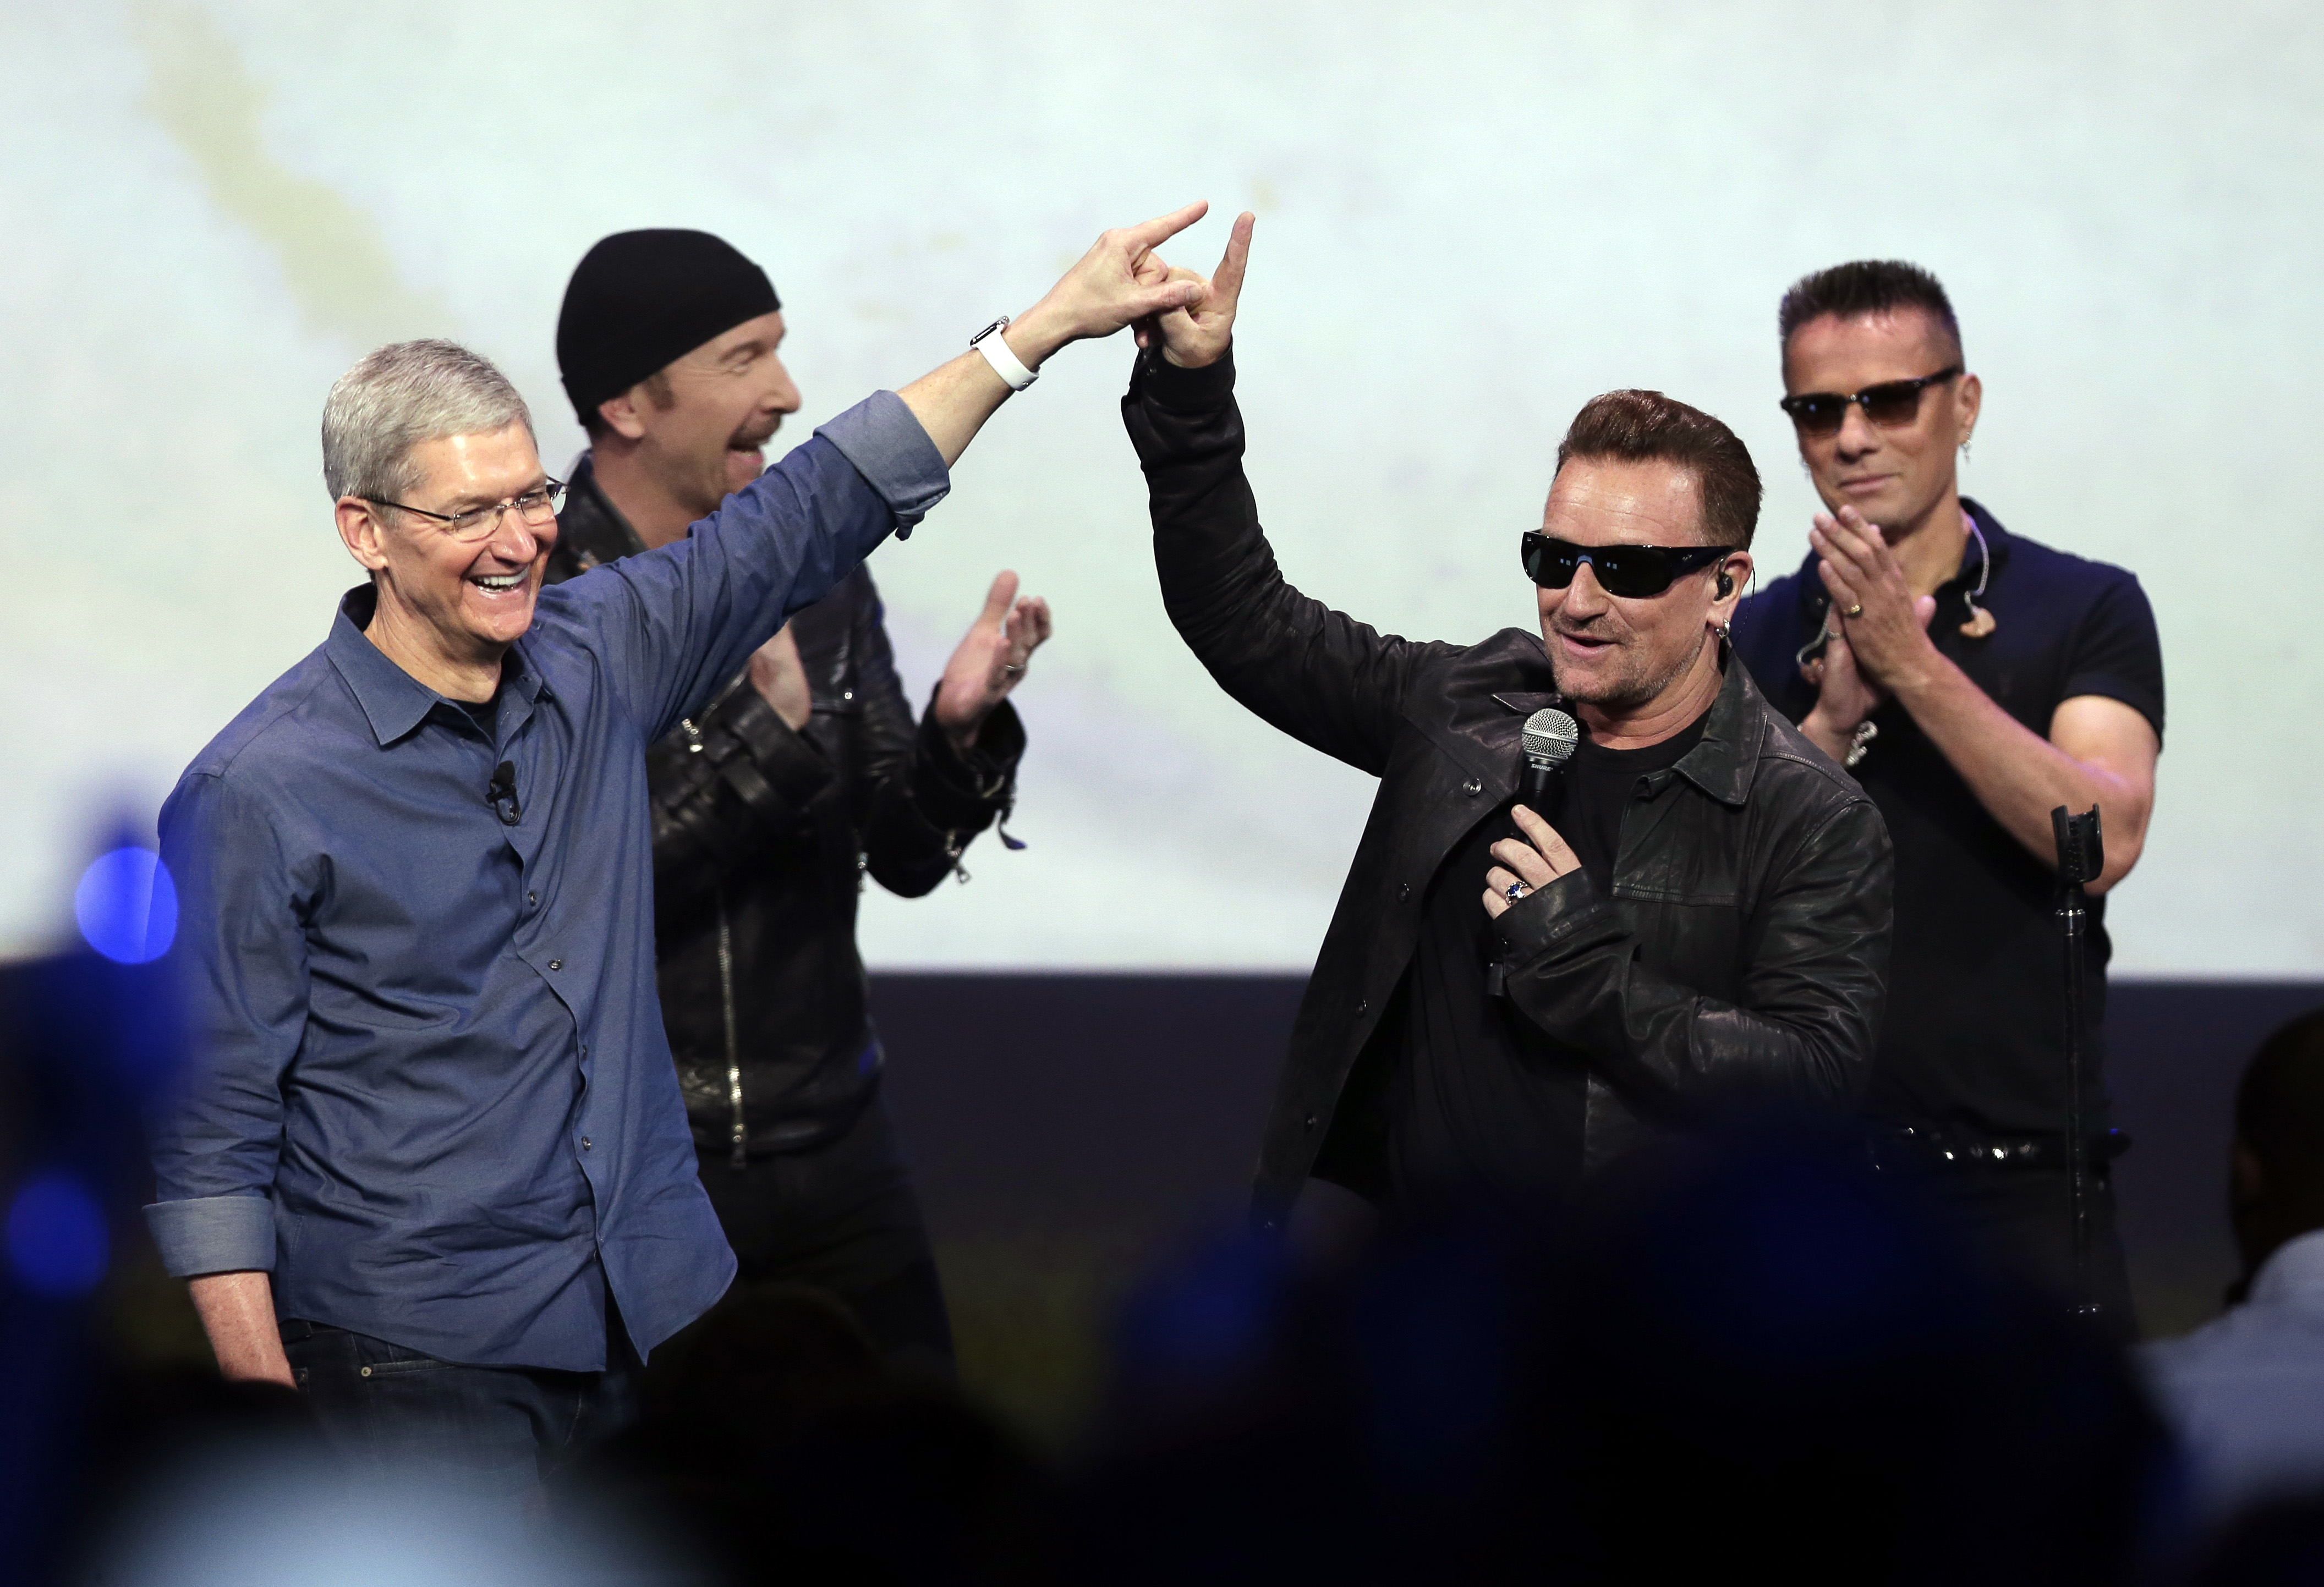 In this Sept. 9, 2014 file photo, Apple CEO Tim Cook (L) greets Bono from the band U2 after they preformed at the end of the Apple event in Cupertino, Calif.